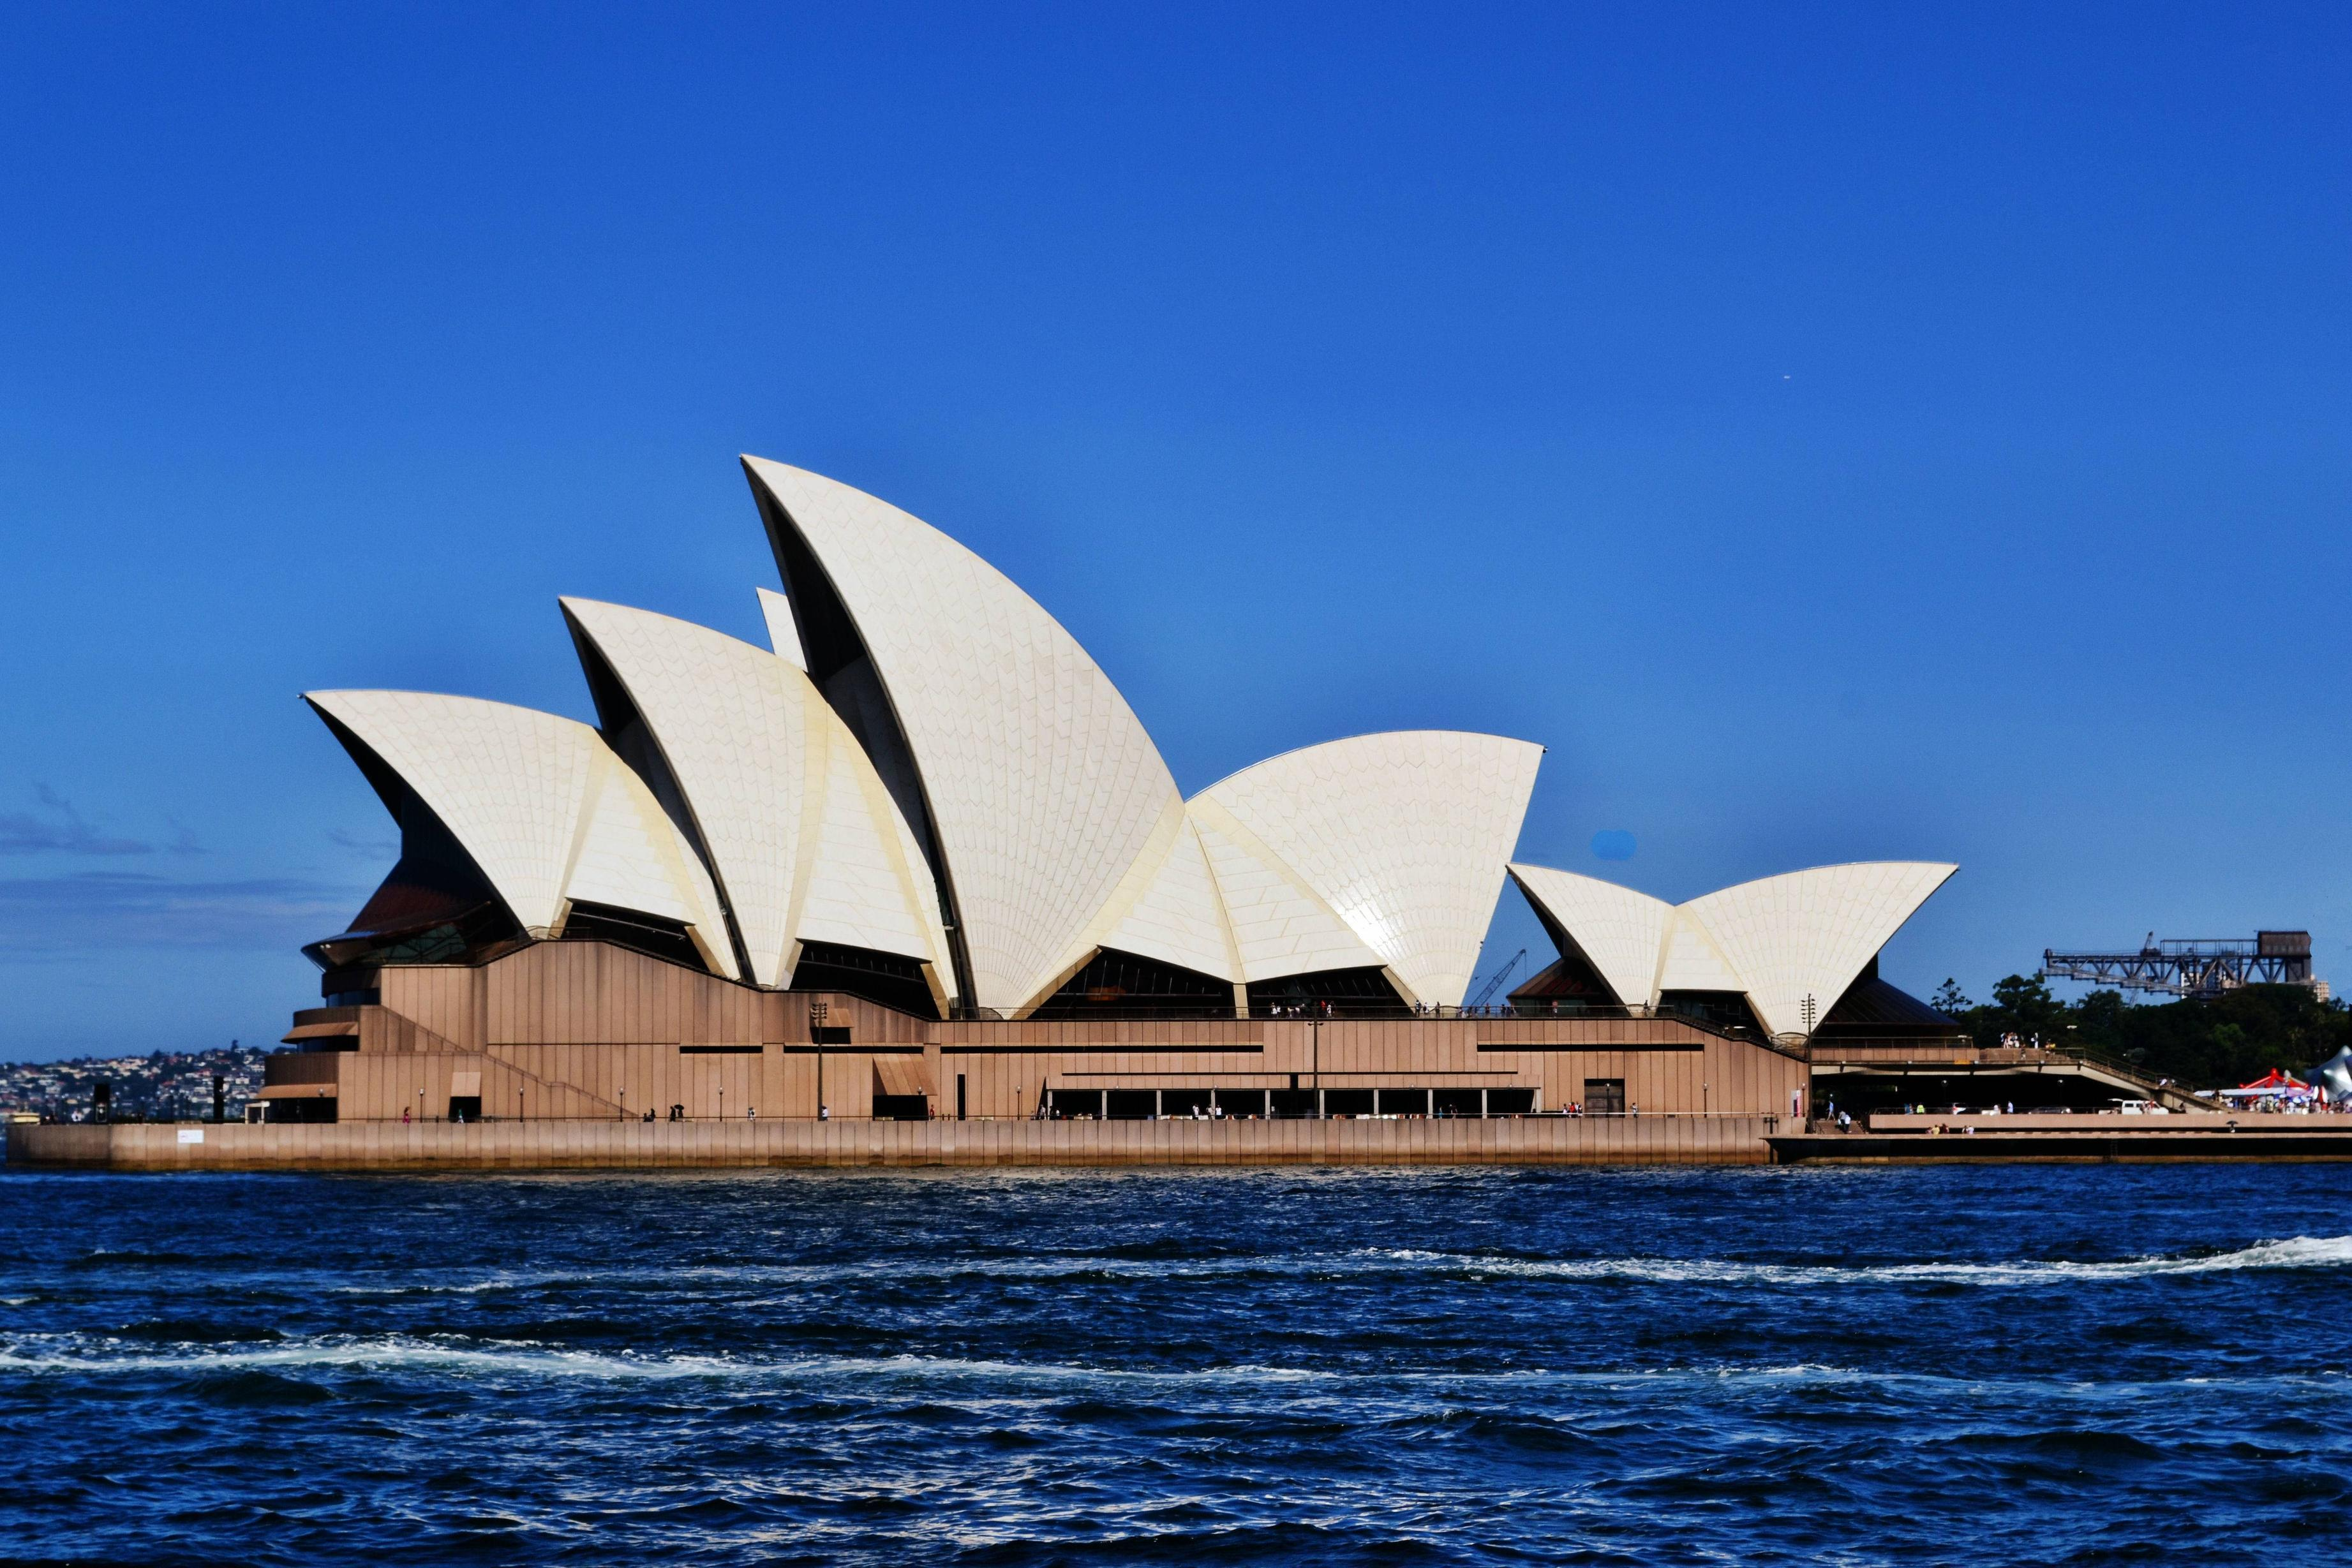 Sydney opera house wallpapers wallpaper cave for Household wallpaper